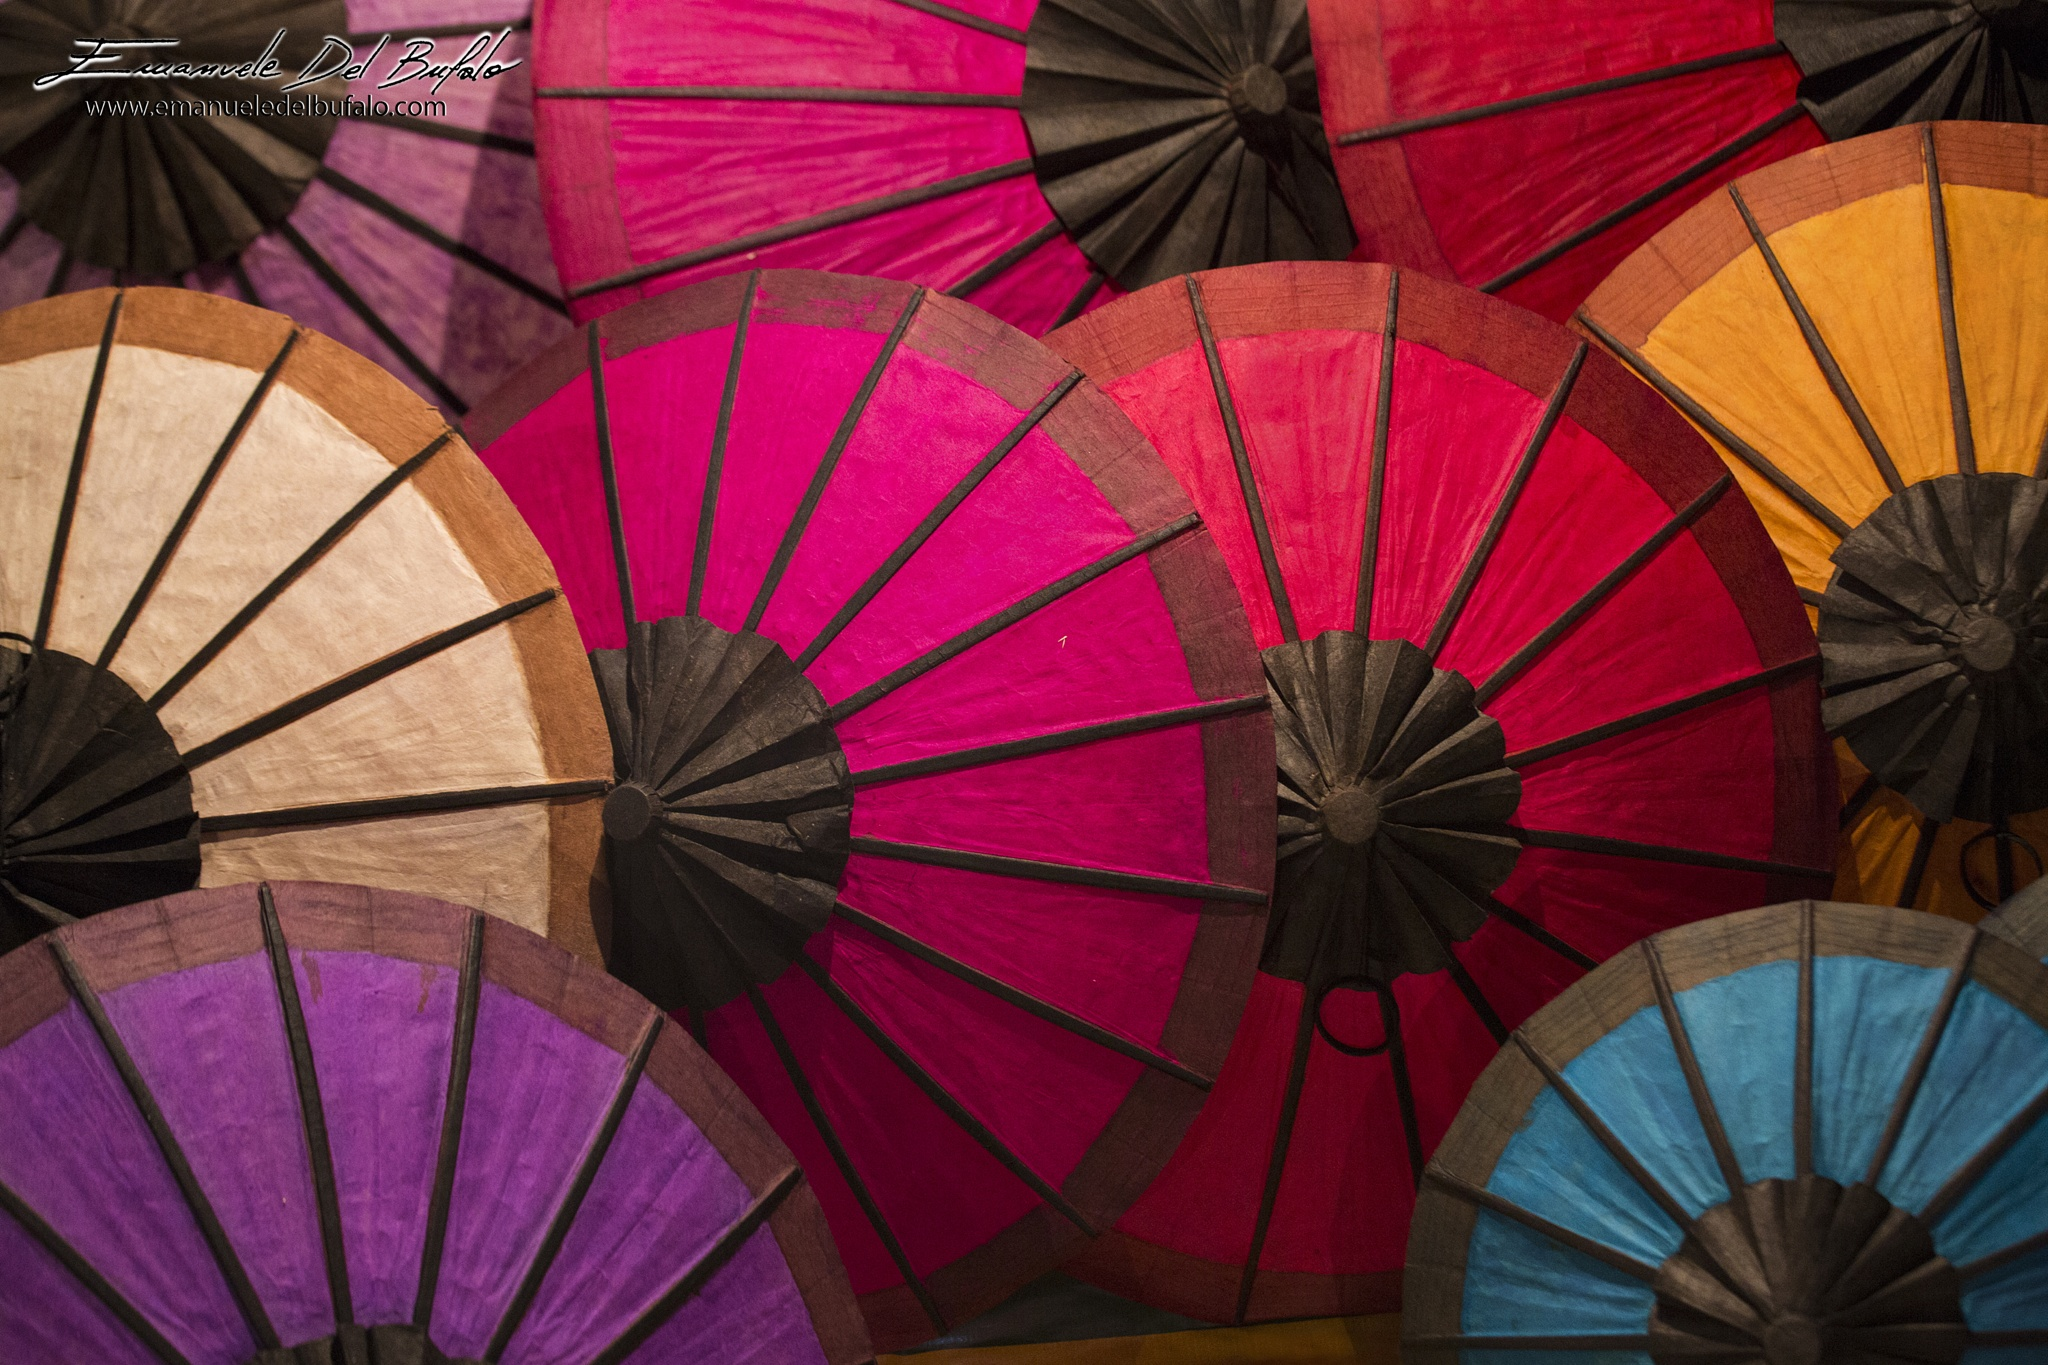 Rice-paper Umbrellas by The Long Term Traveler